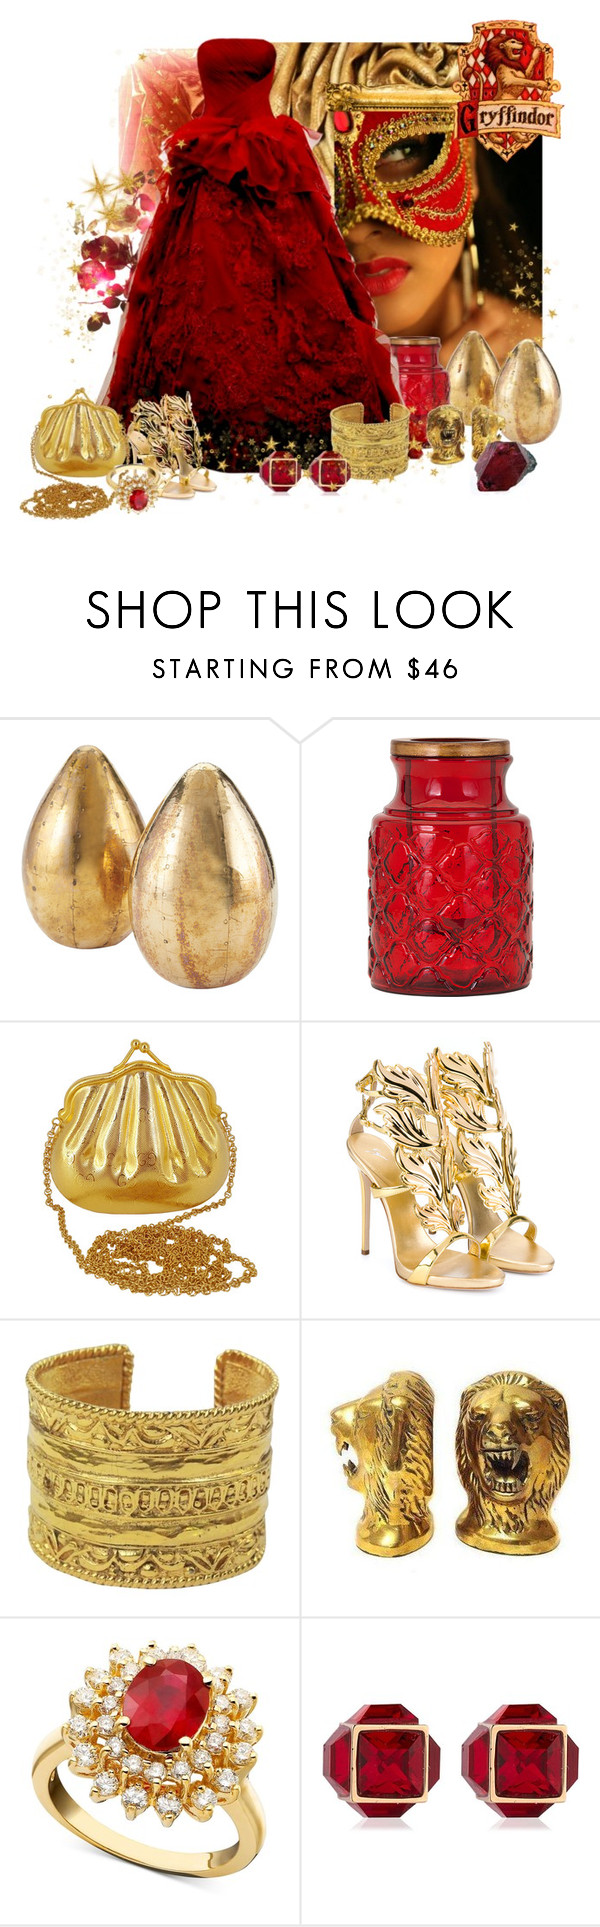 """""""Gryffindor ball gown"""" by caribea ❤ liked on Polyvore featuring Lazy Susan, Dot & Bo, Gucci, Giuseppe Zanotti, Chanel, R.H. Macy's & Co., Vita Fede, harrypotter, gold and red"""